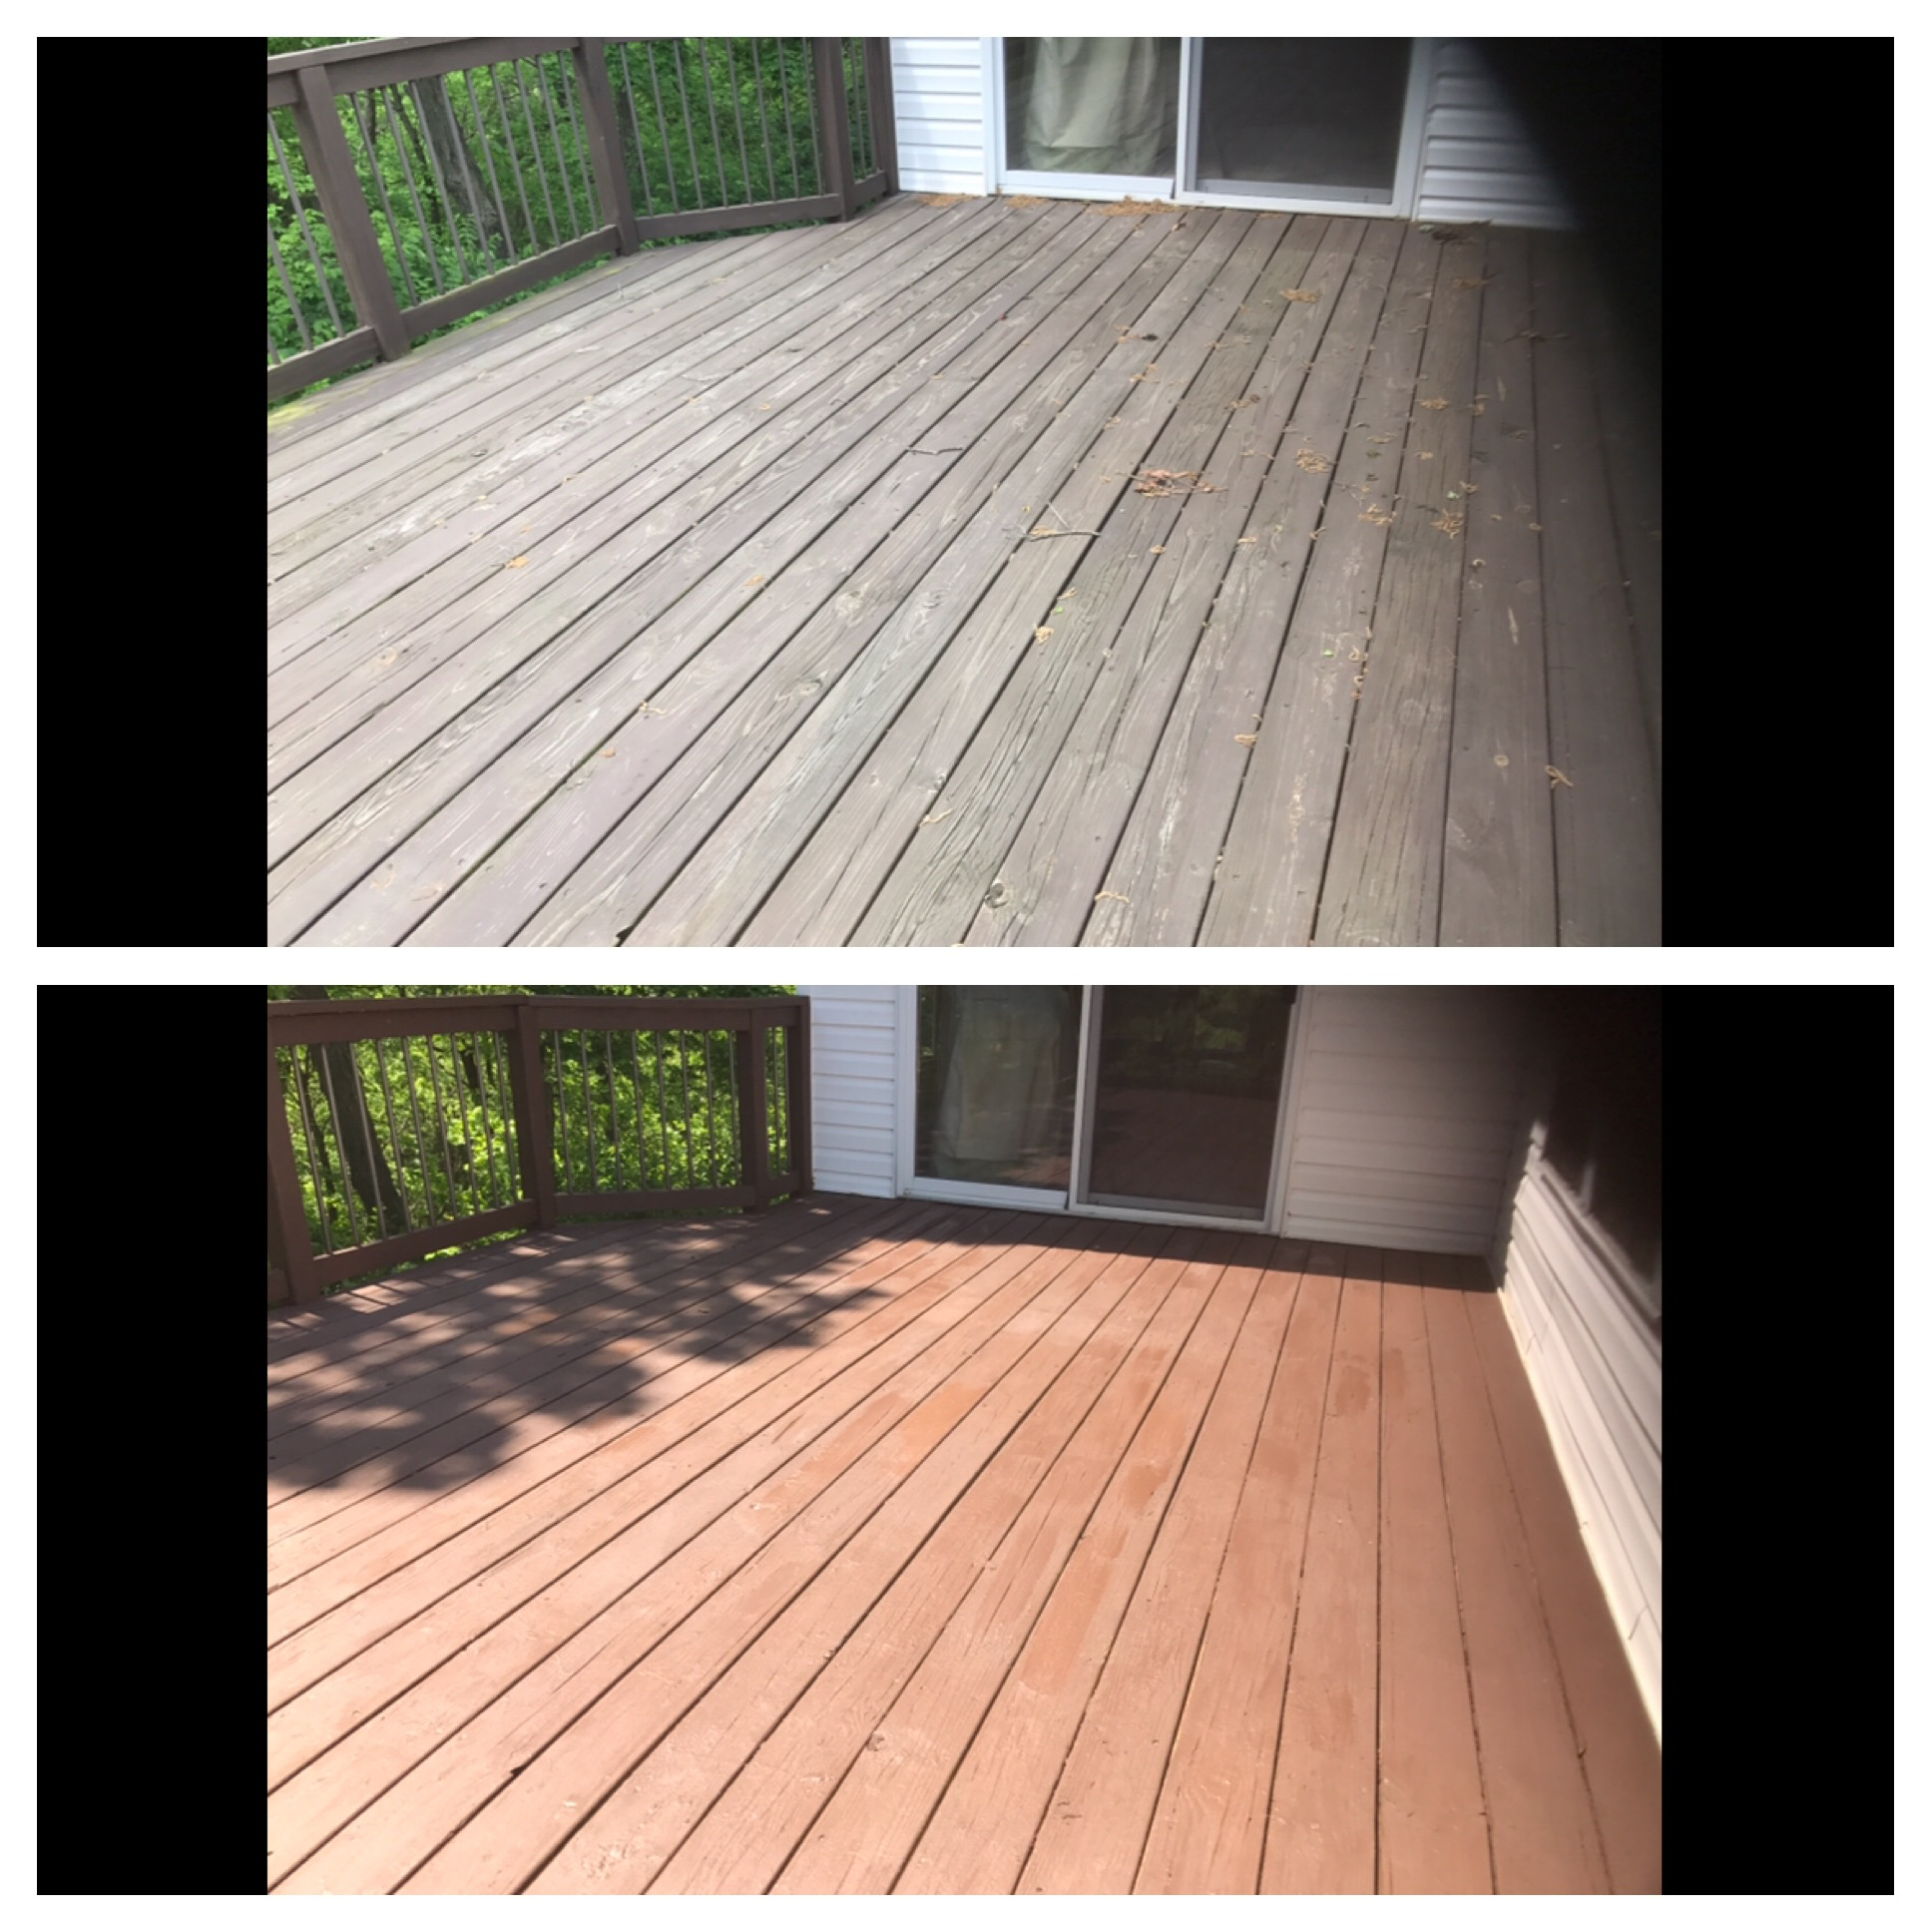 A dependable deck cleaning service in St. Charles County, MO